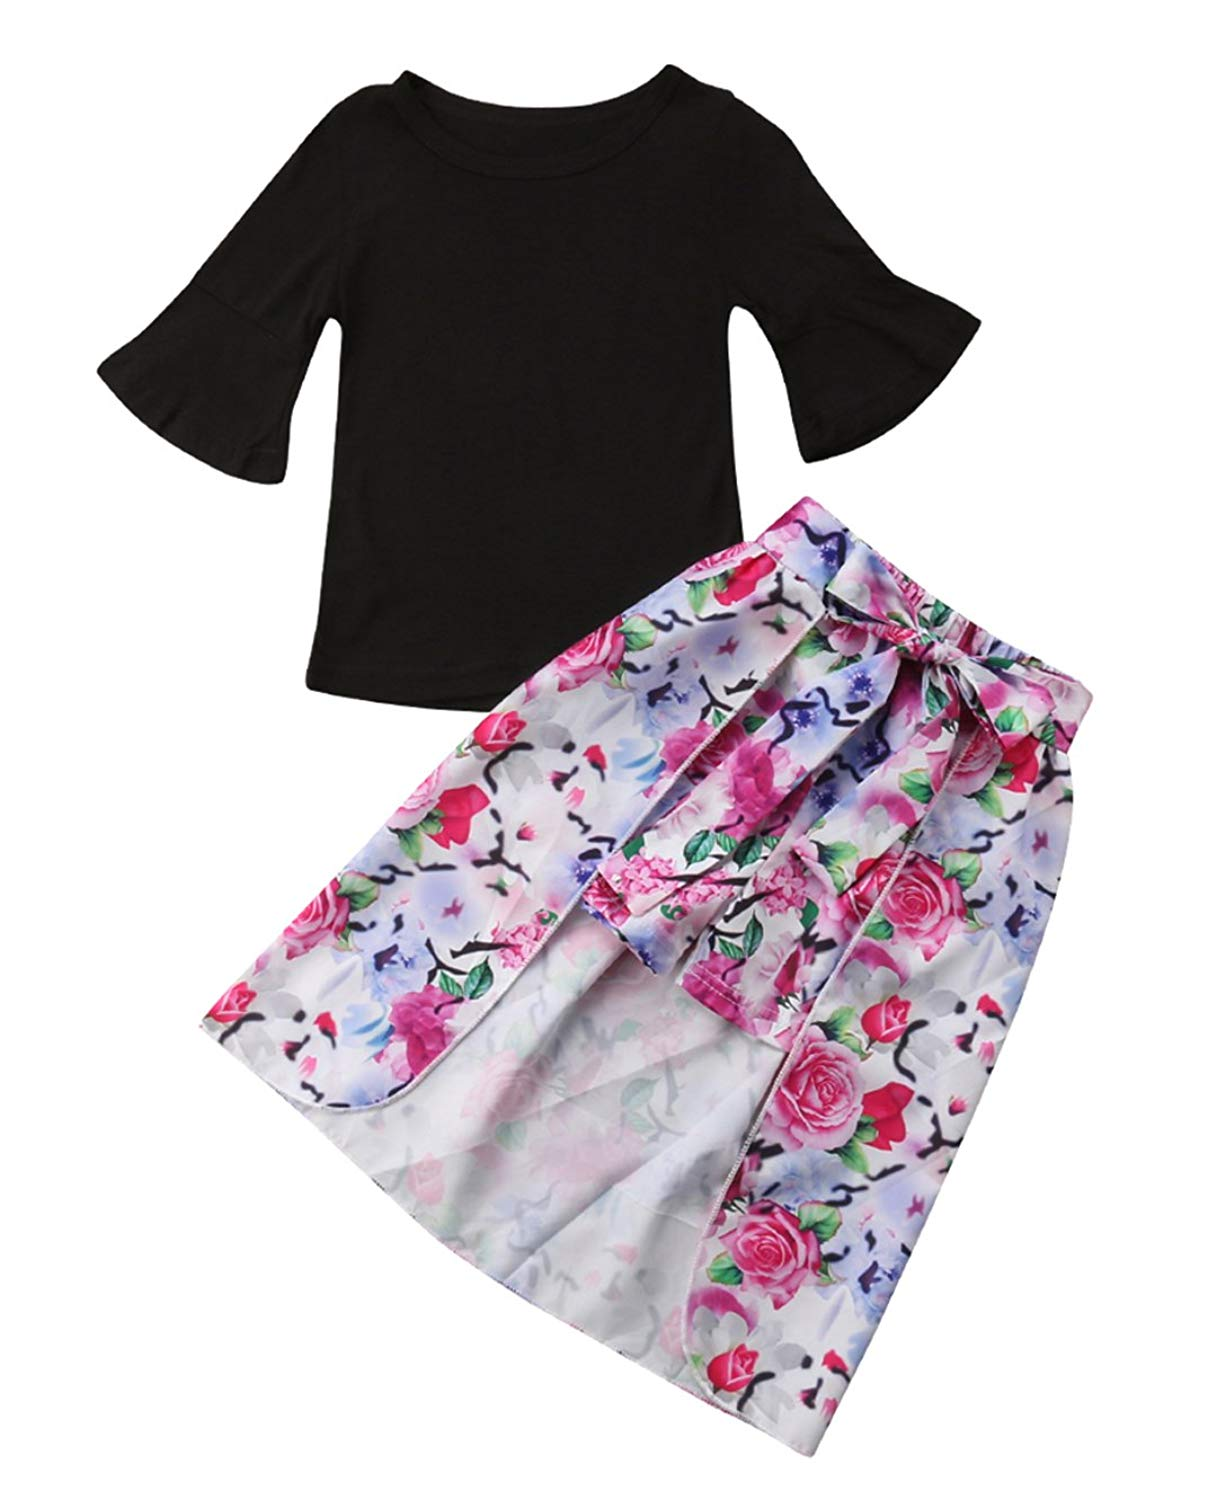 3pcs 1-7 Years Toddler Girls Outfit Set, Baby Girls Black T-Shirt Tops,Baby Girls Floral Shorts and Cloak Clothes Set